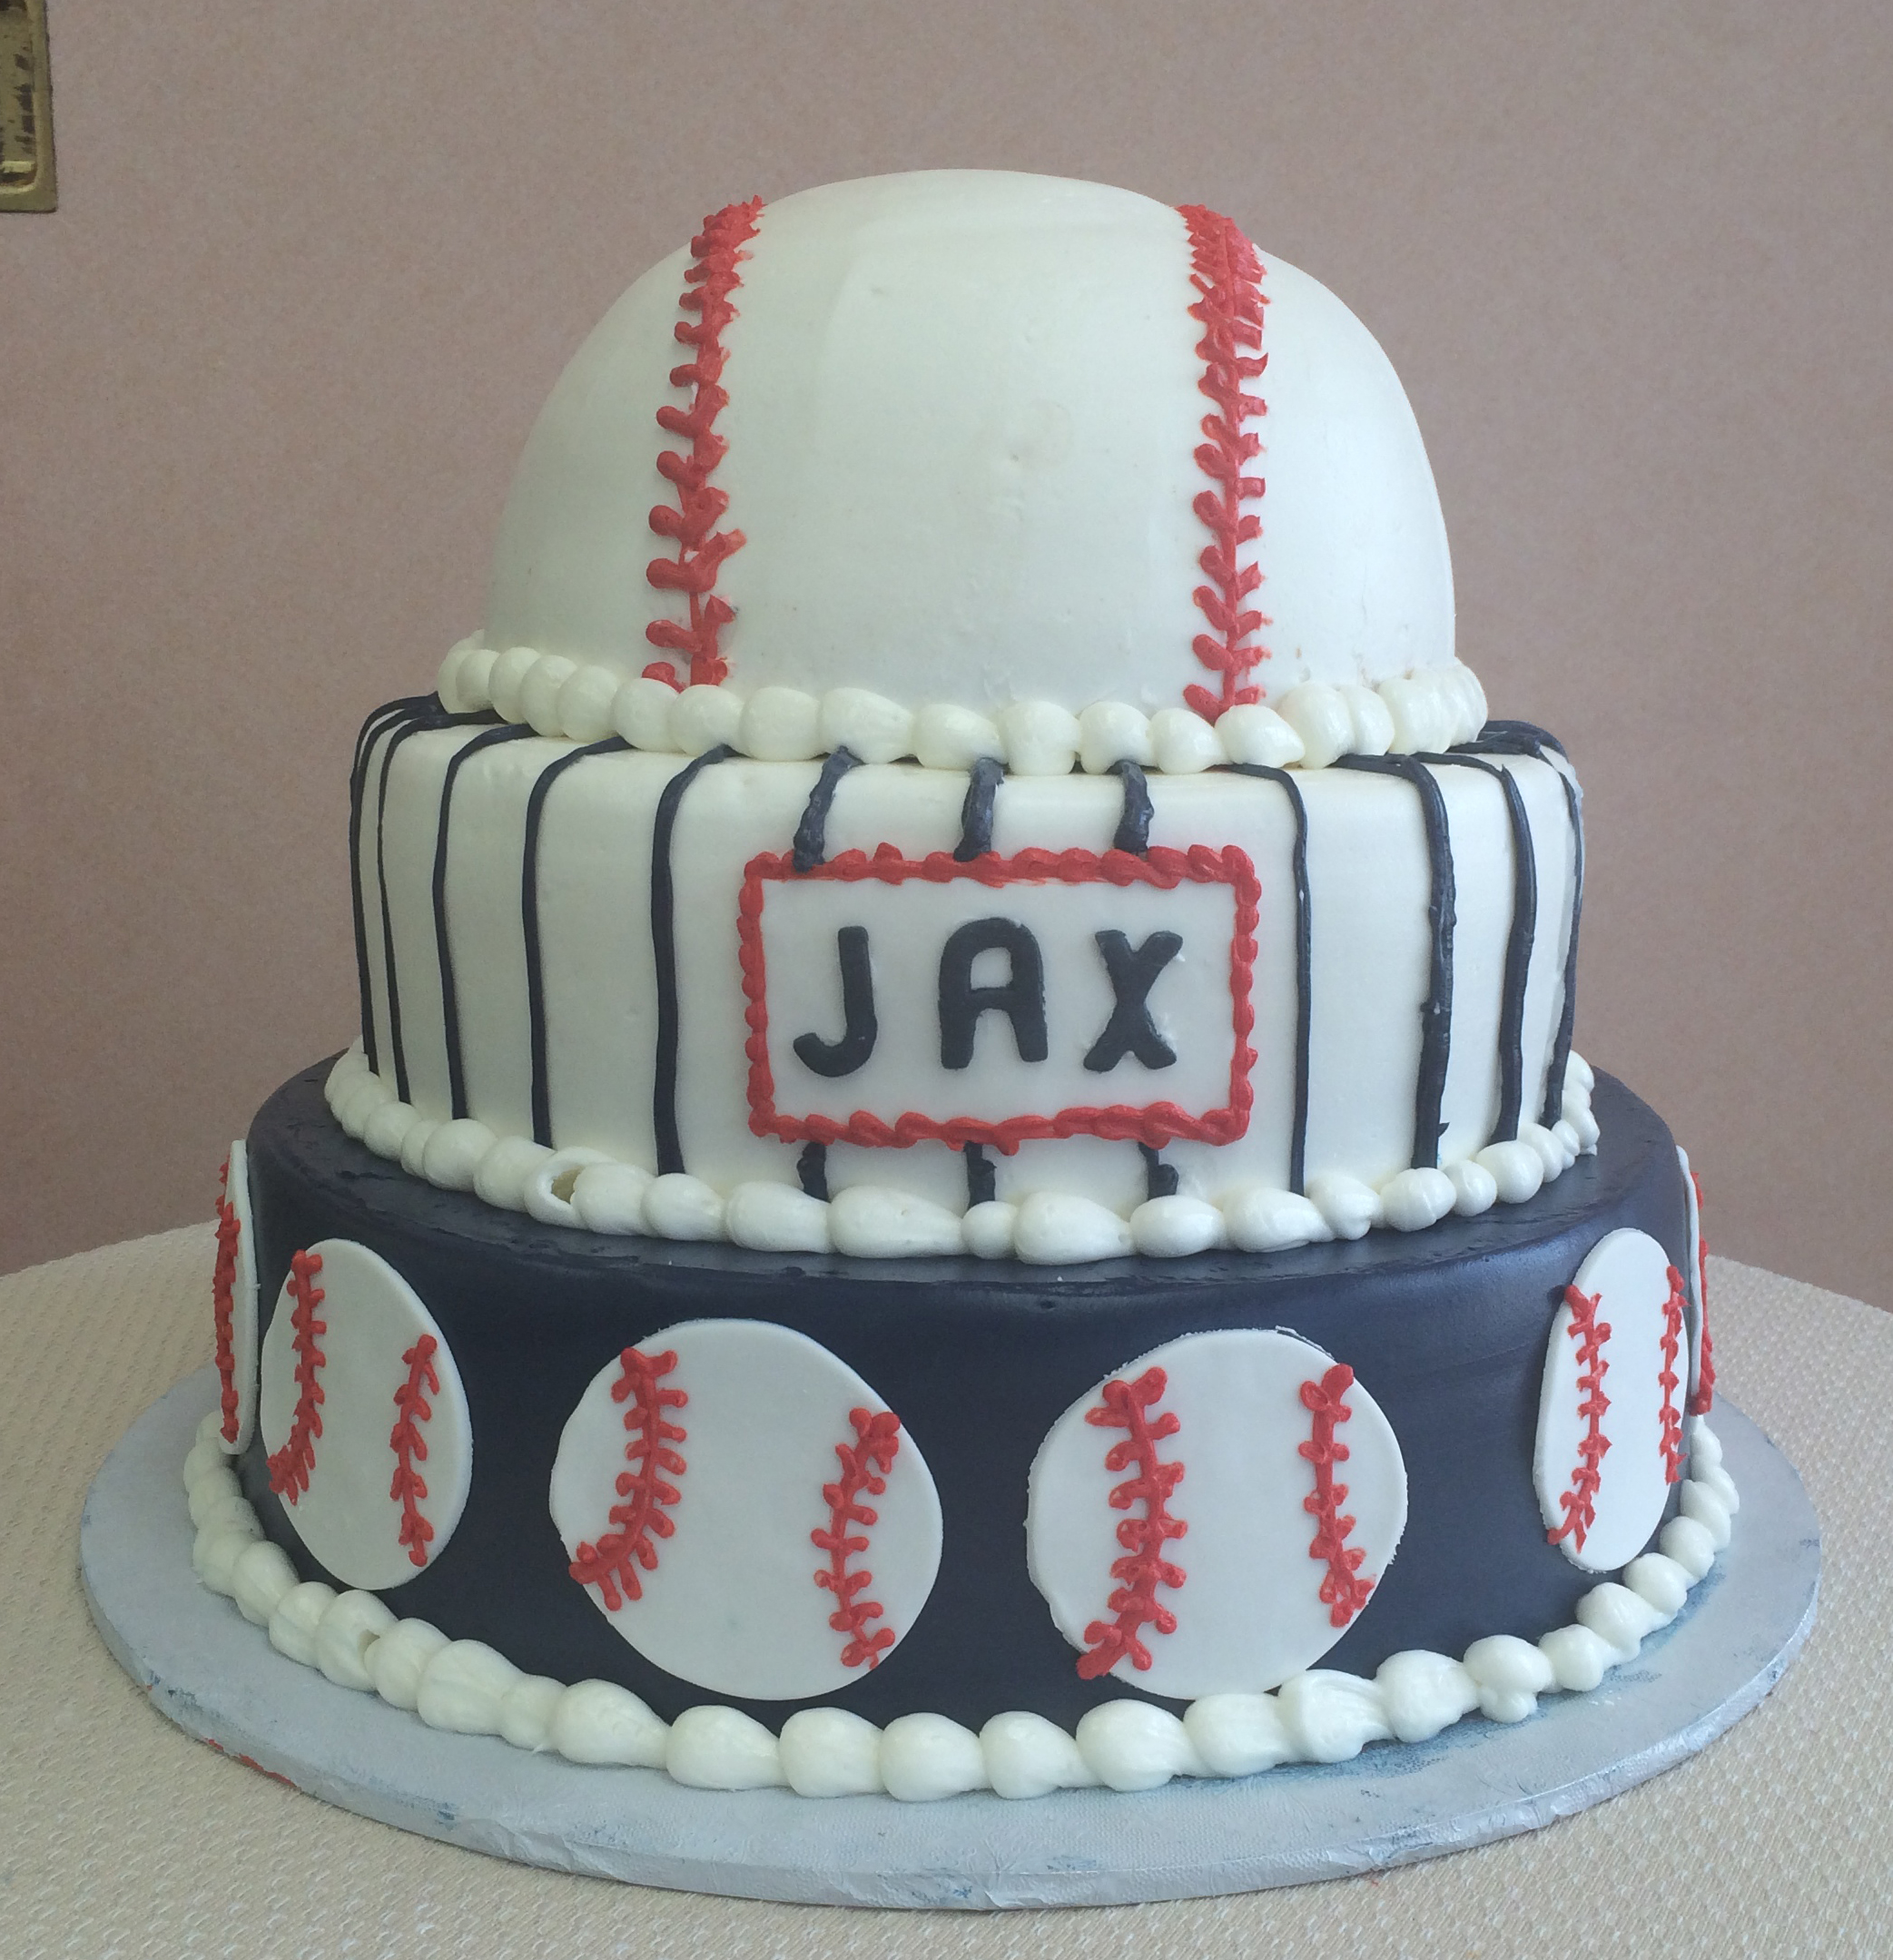 Butter Cream with Fondant Baseball Cut-Outs, Pin Stripes & Baseball Tier